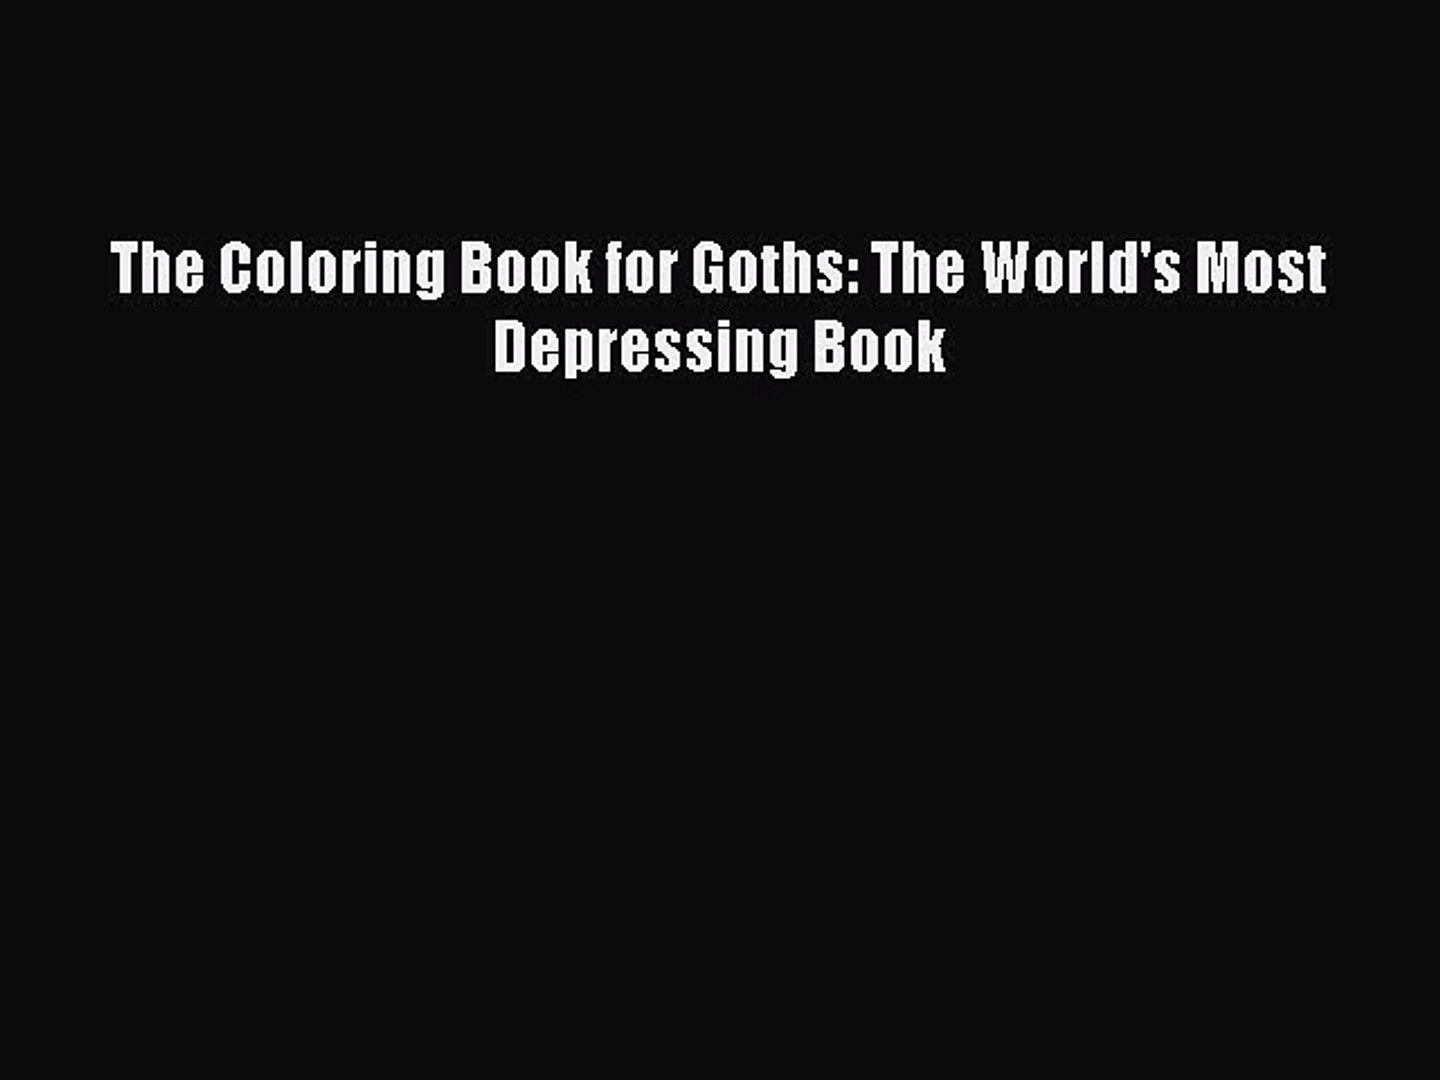 Pdf] The Coloring Book For Goths  The World's Most Depressing Book